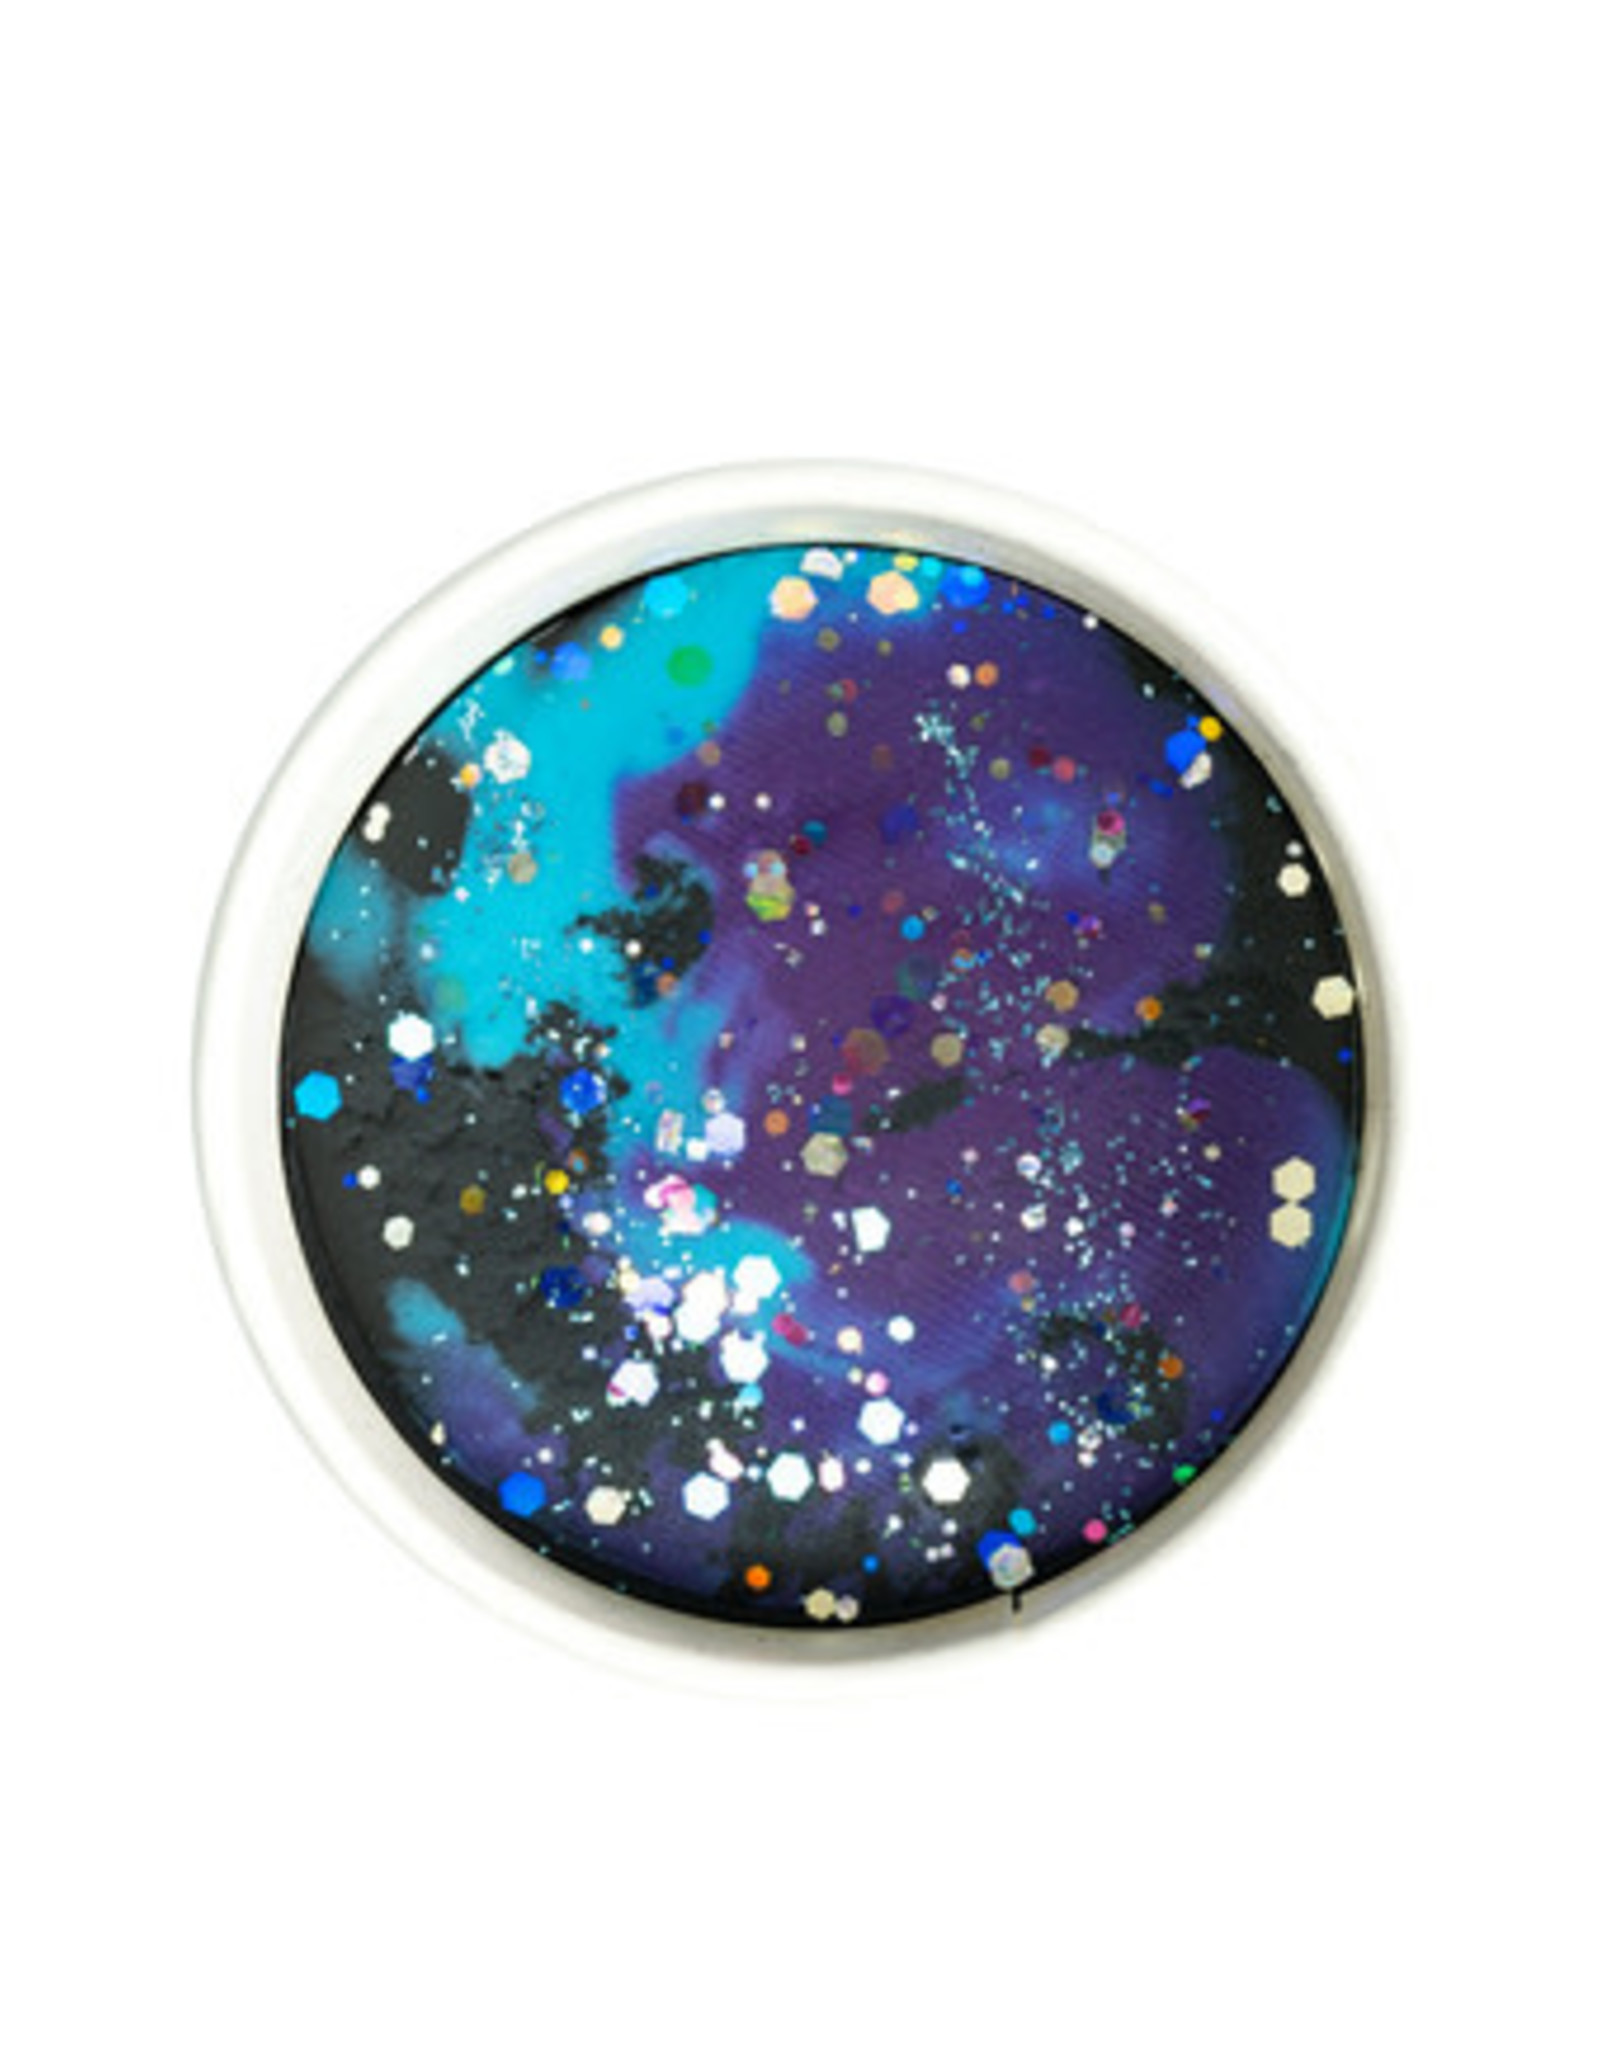 Crazy Aaron's Thinking Putty Space Galaxy Cup